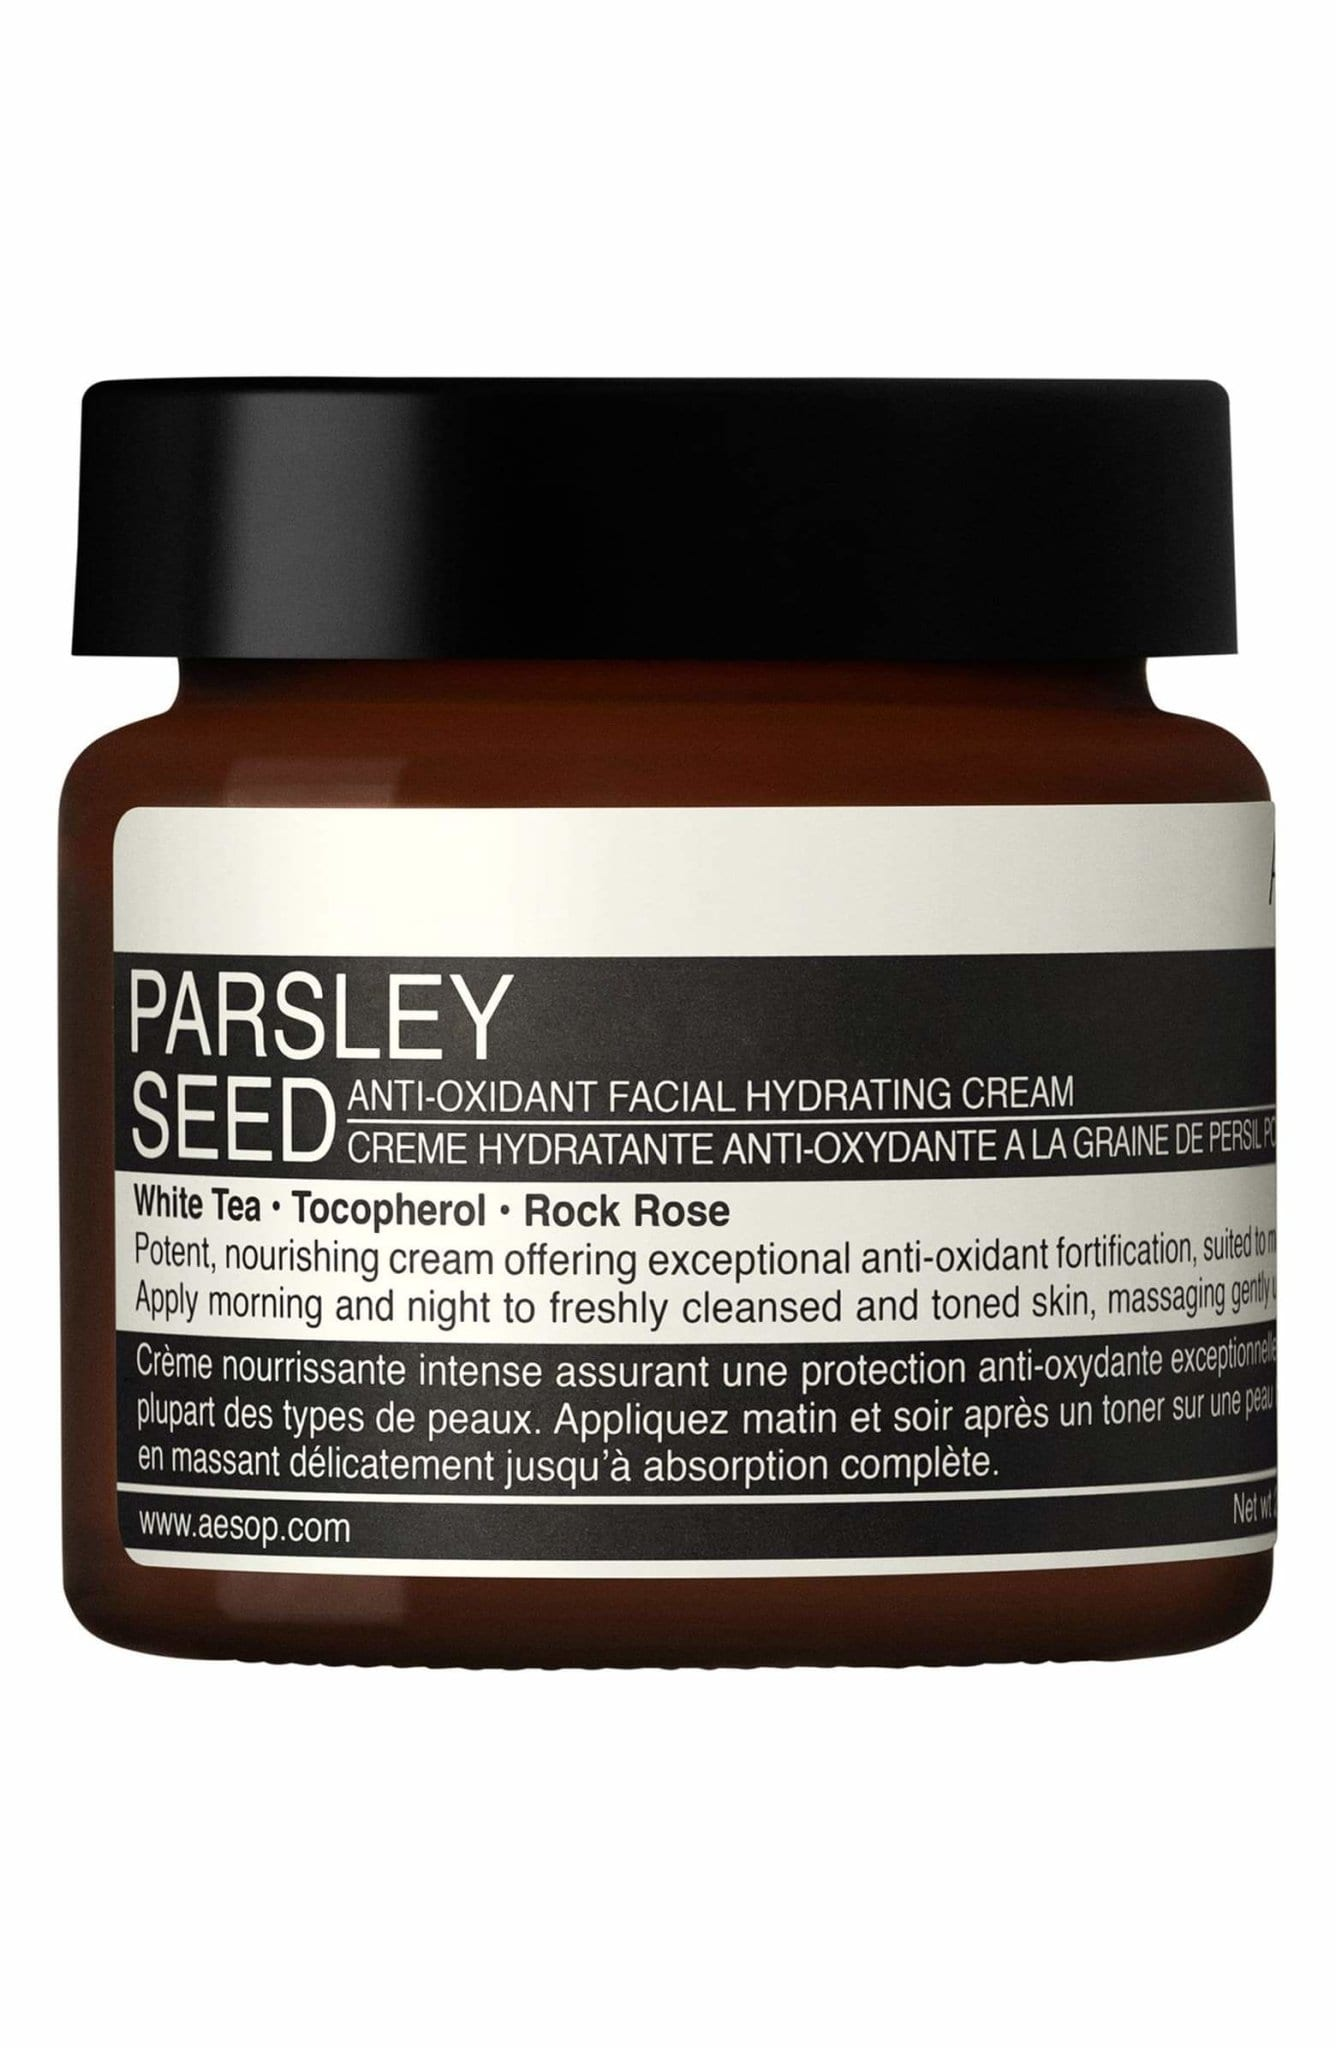 Parsley Seed Anti-Oxidant Facial Hydrating Cream 60mL / Neighborhood Goods